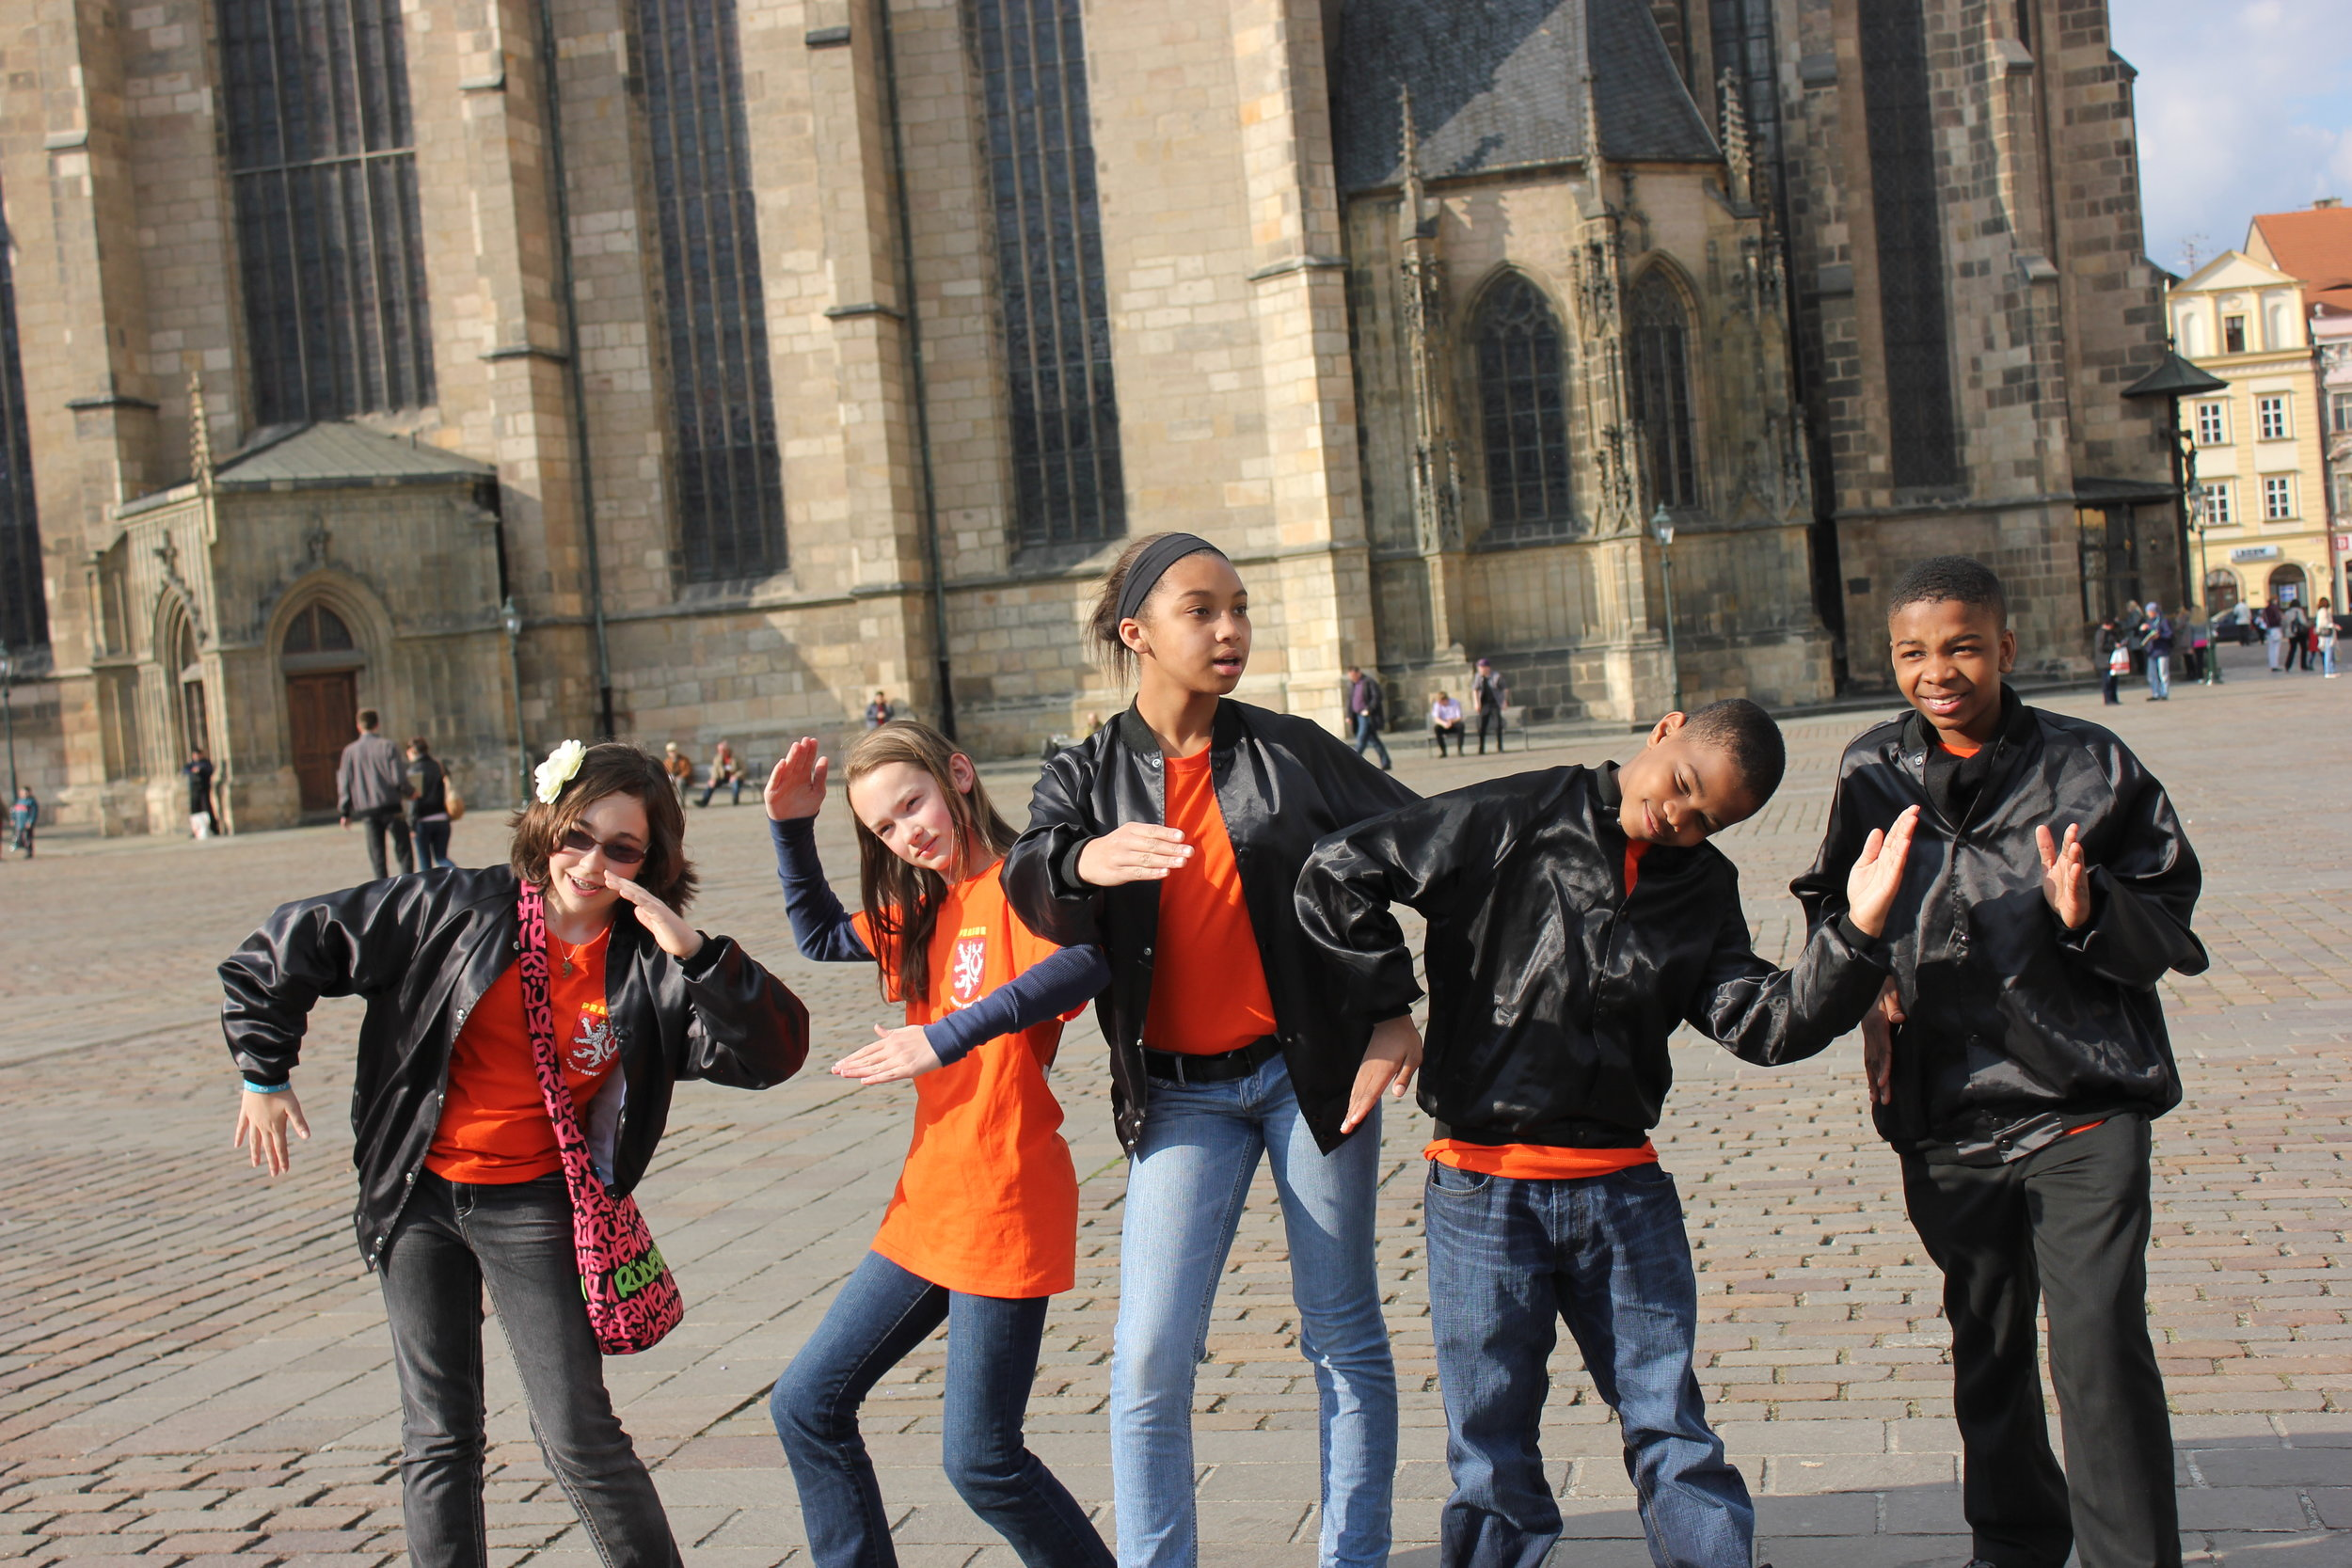 Kofi & friends posing in Germany. (Left to right: Kate Klika, Claire Moritz, Reyna Moran, Kardierre Allen, Kofi Boakye)